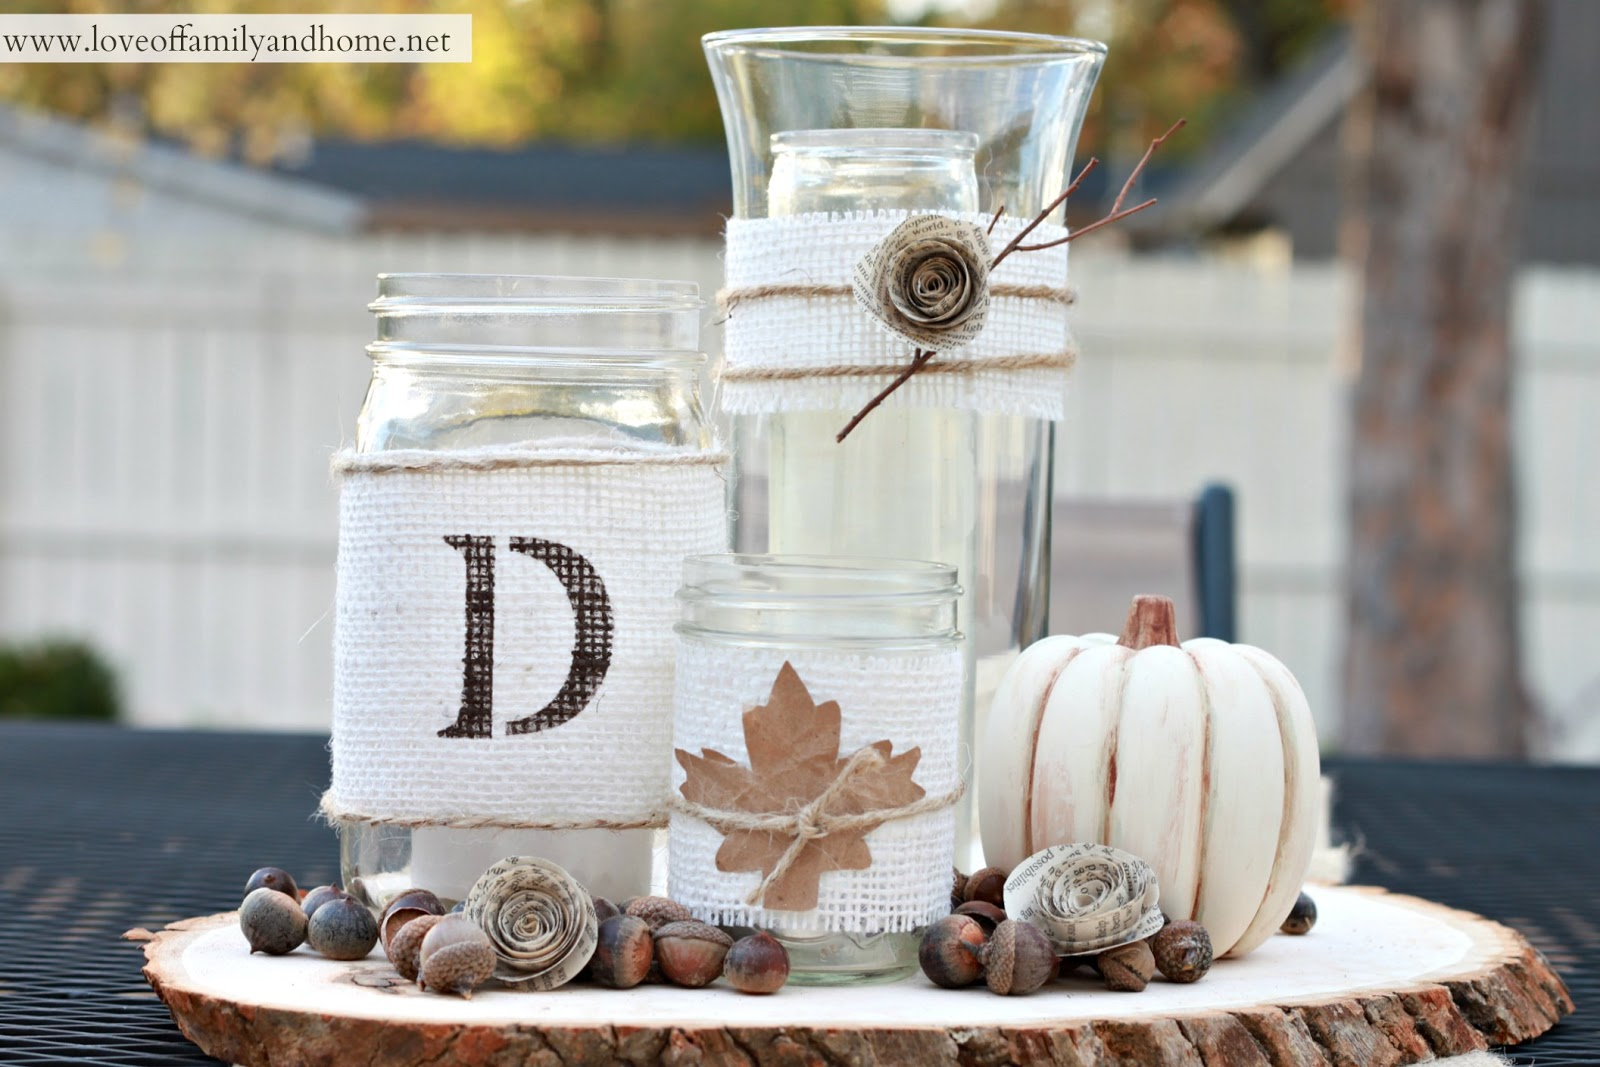 14 Simple And Useful DIY Thanksgiving Jar Crafts - Shelterness